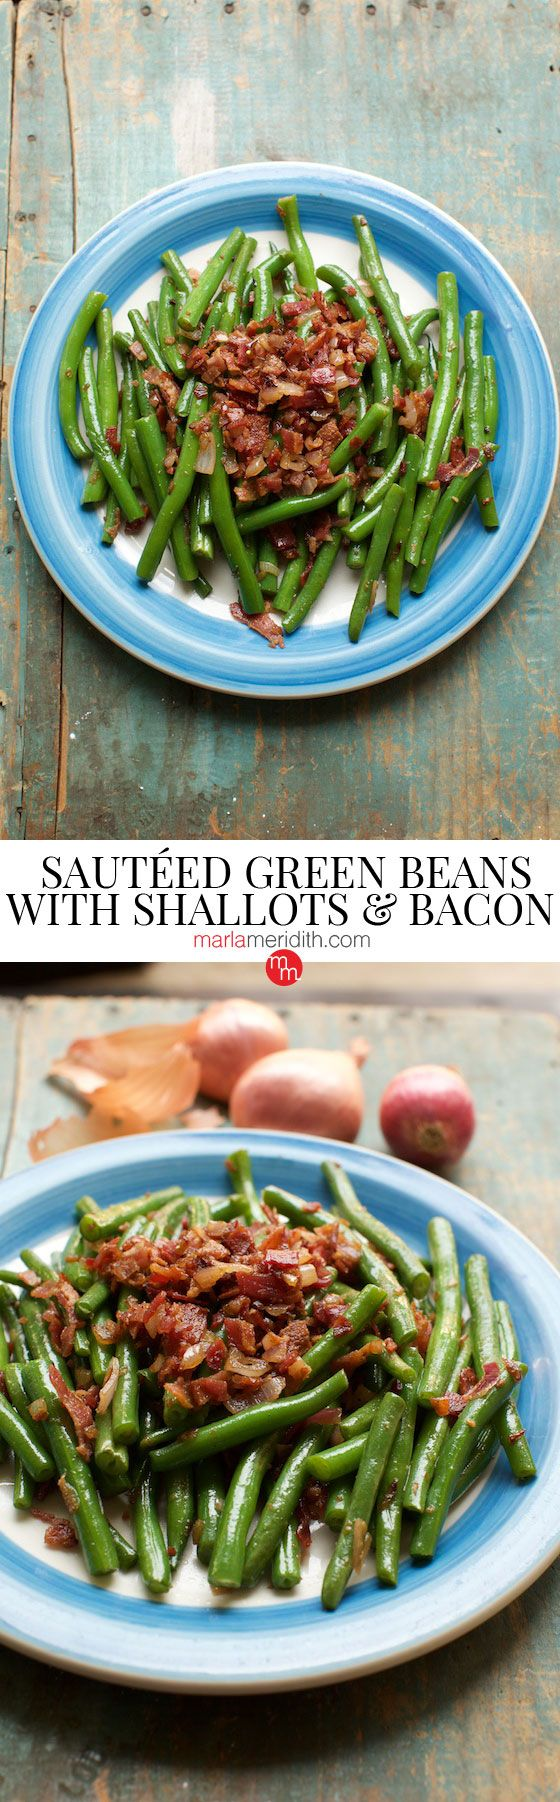 Sautéed Green Beans with Shallots & Bacon will be the hit at your holiday table! MarlaMeridith.com #recipe #bacon #greenbeans